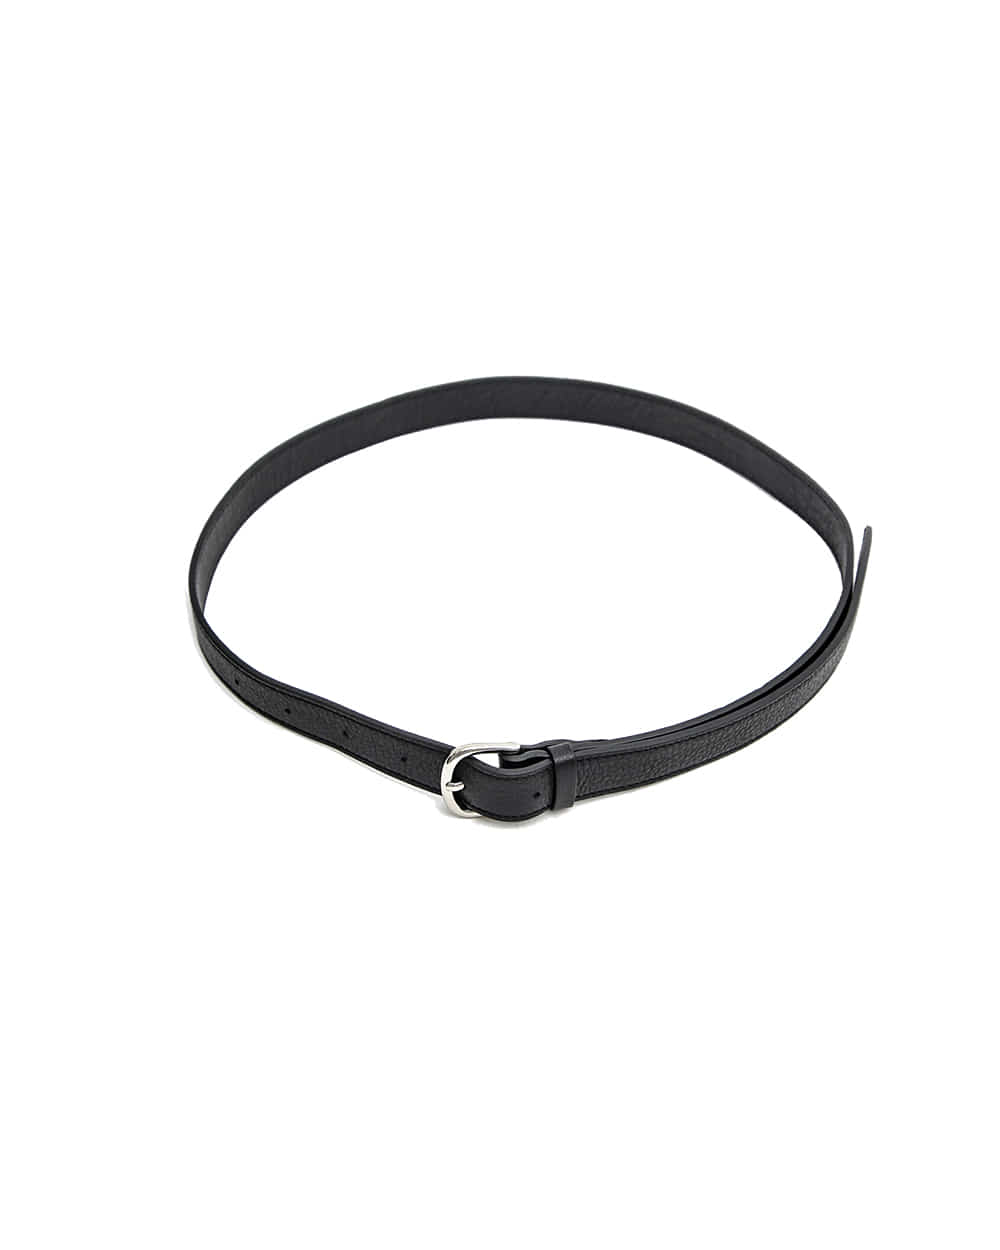 ATE STUDIOS ALL-PURPOSE LEATHER BELT (BLACK)